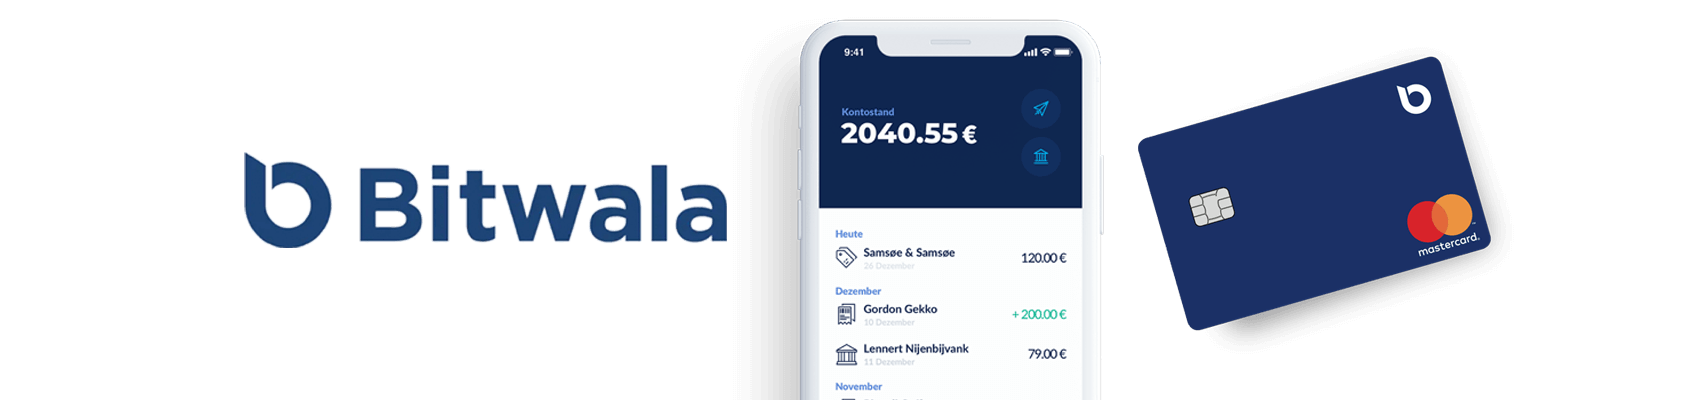 Bitwala bank account with cryptocurrencies in Germany